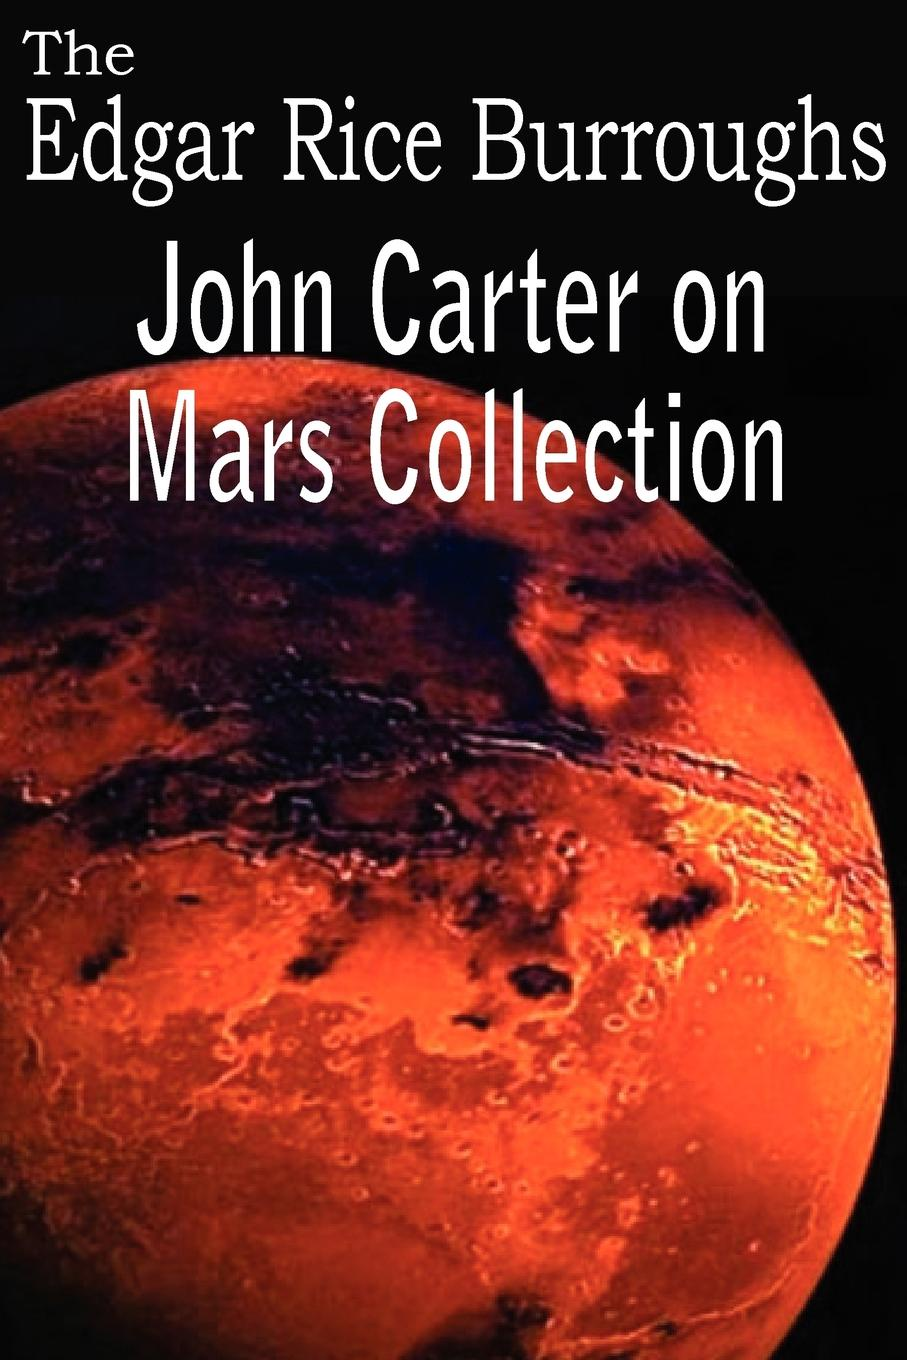 Edgar Rice Burroughs John Carter on Mars Collection edgar rice burroughs the war chief